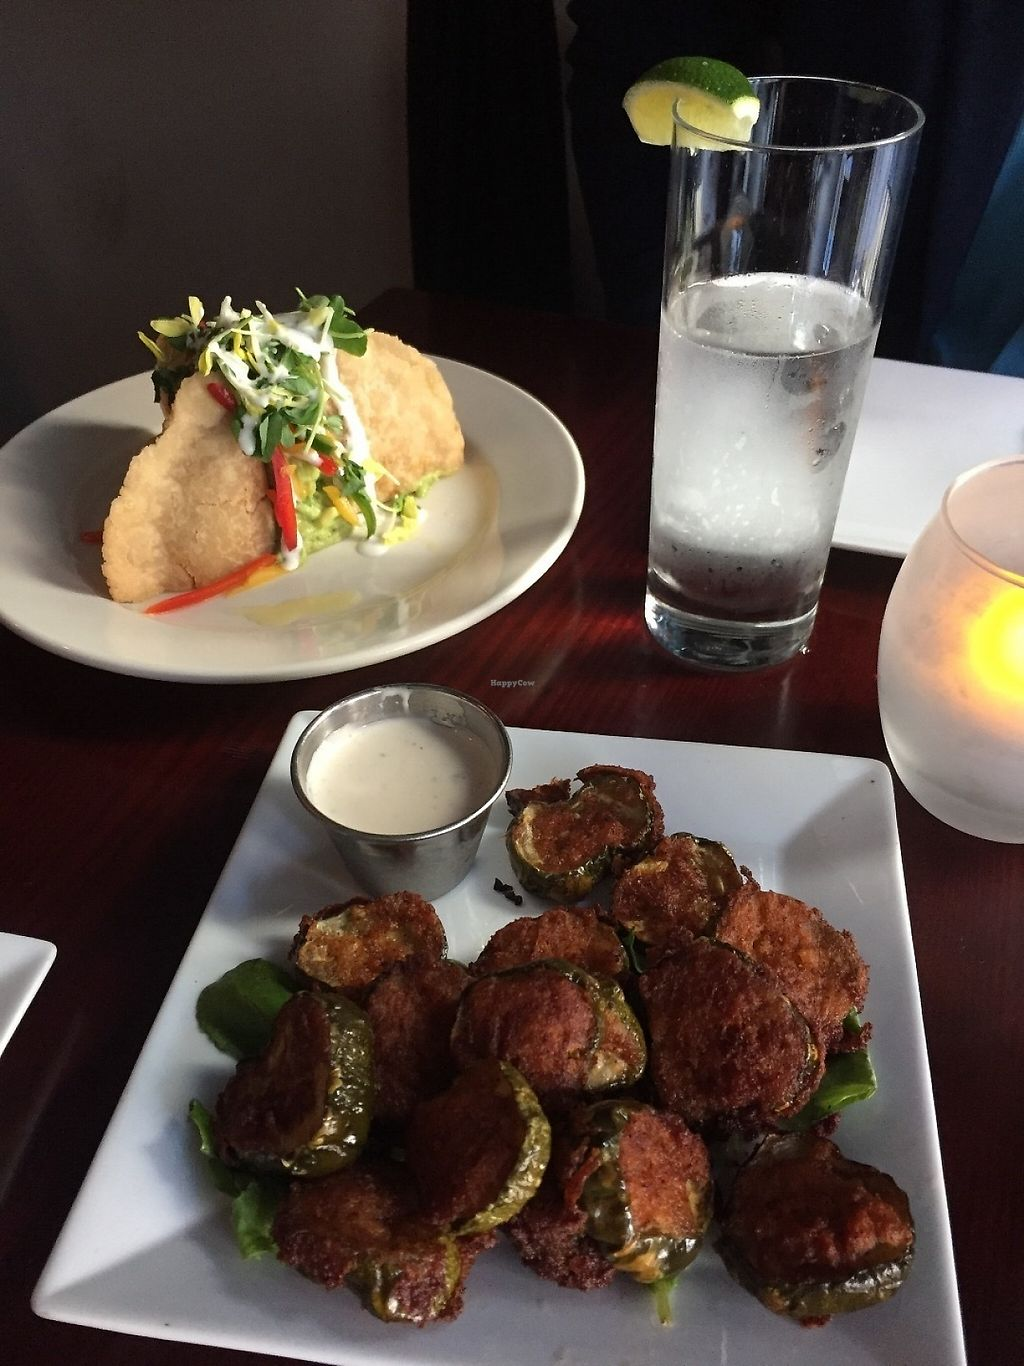 """Photo of Blossom Restaurant  by <a href=""""/members/profile/KaitlynnGill"""">KaitlynnGill</a> <br/>Special empanadas and fried pickles <br/> May 1, 2017  - <a href='/contact/abuse/image/6097/254763'>Report</a>"""